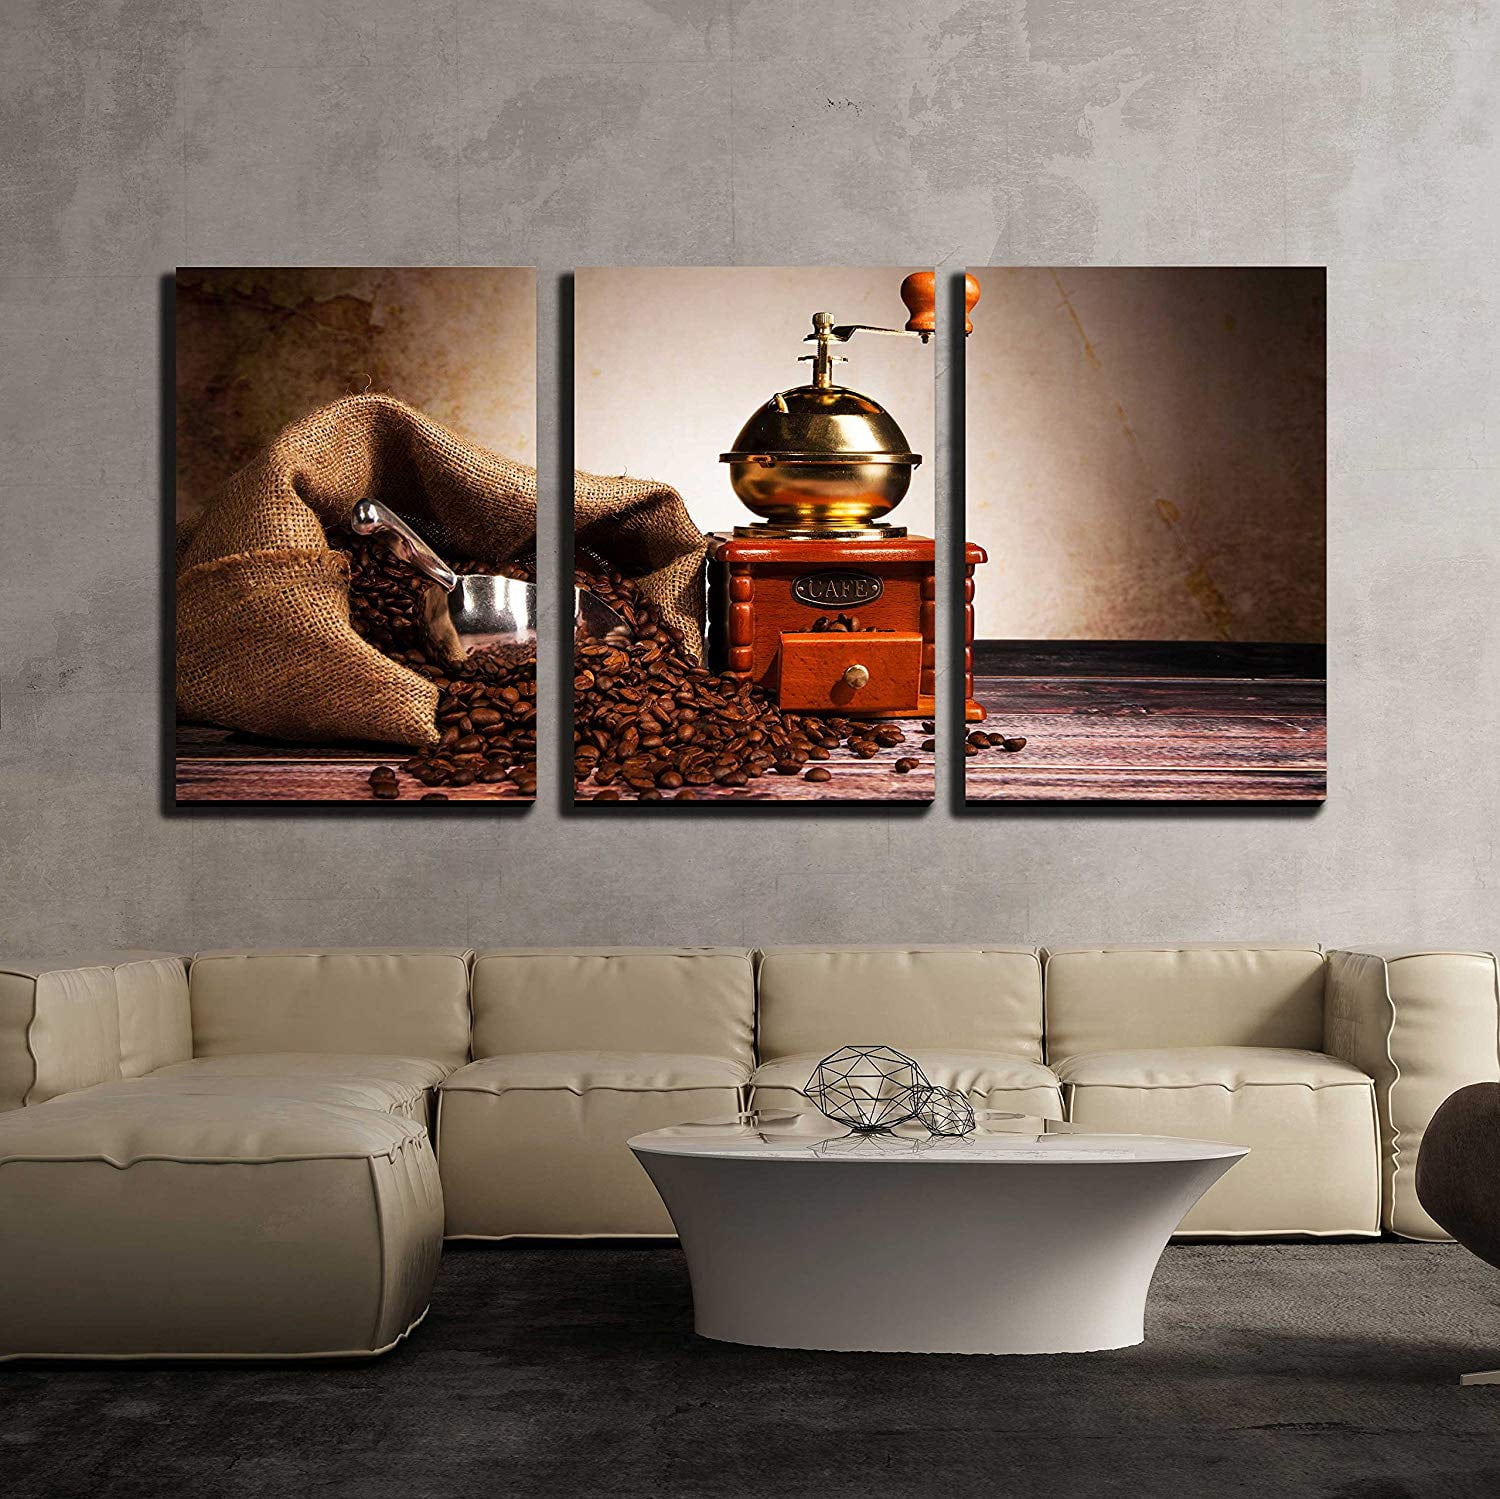 Wall26 3 Piece Canvas Wall Art Coffee Still Life With Wooden Grinder Modern Home Decor Stretched And Framed Ready To Hang 16 X24 X3 Panels